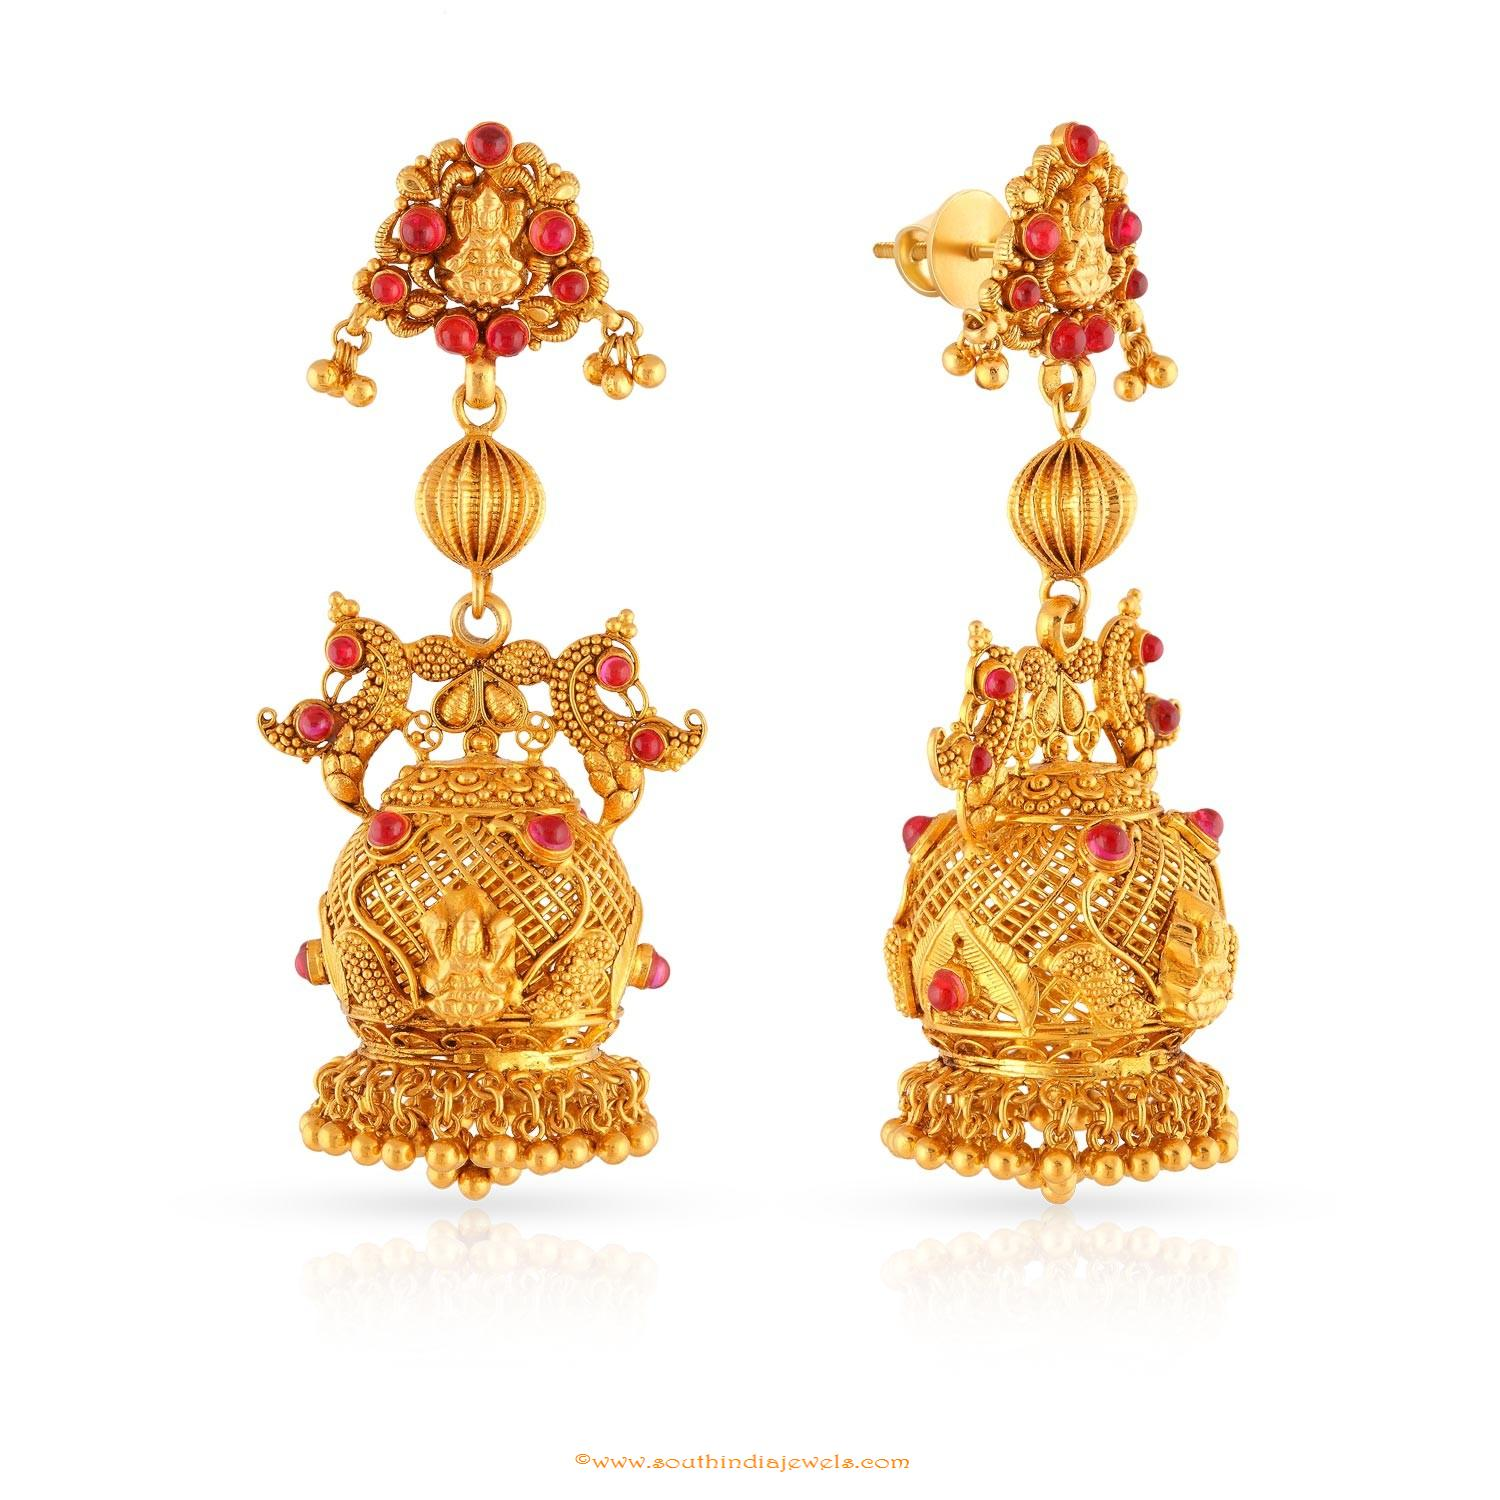 buy pages jewellers designs earrings jhumkas jhumka pgid png online jewellery gold gadgil